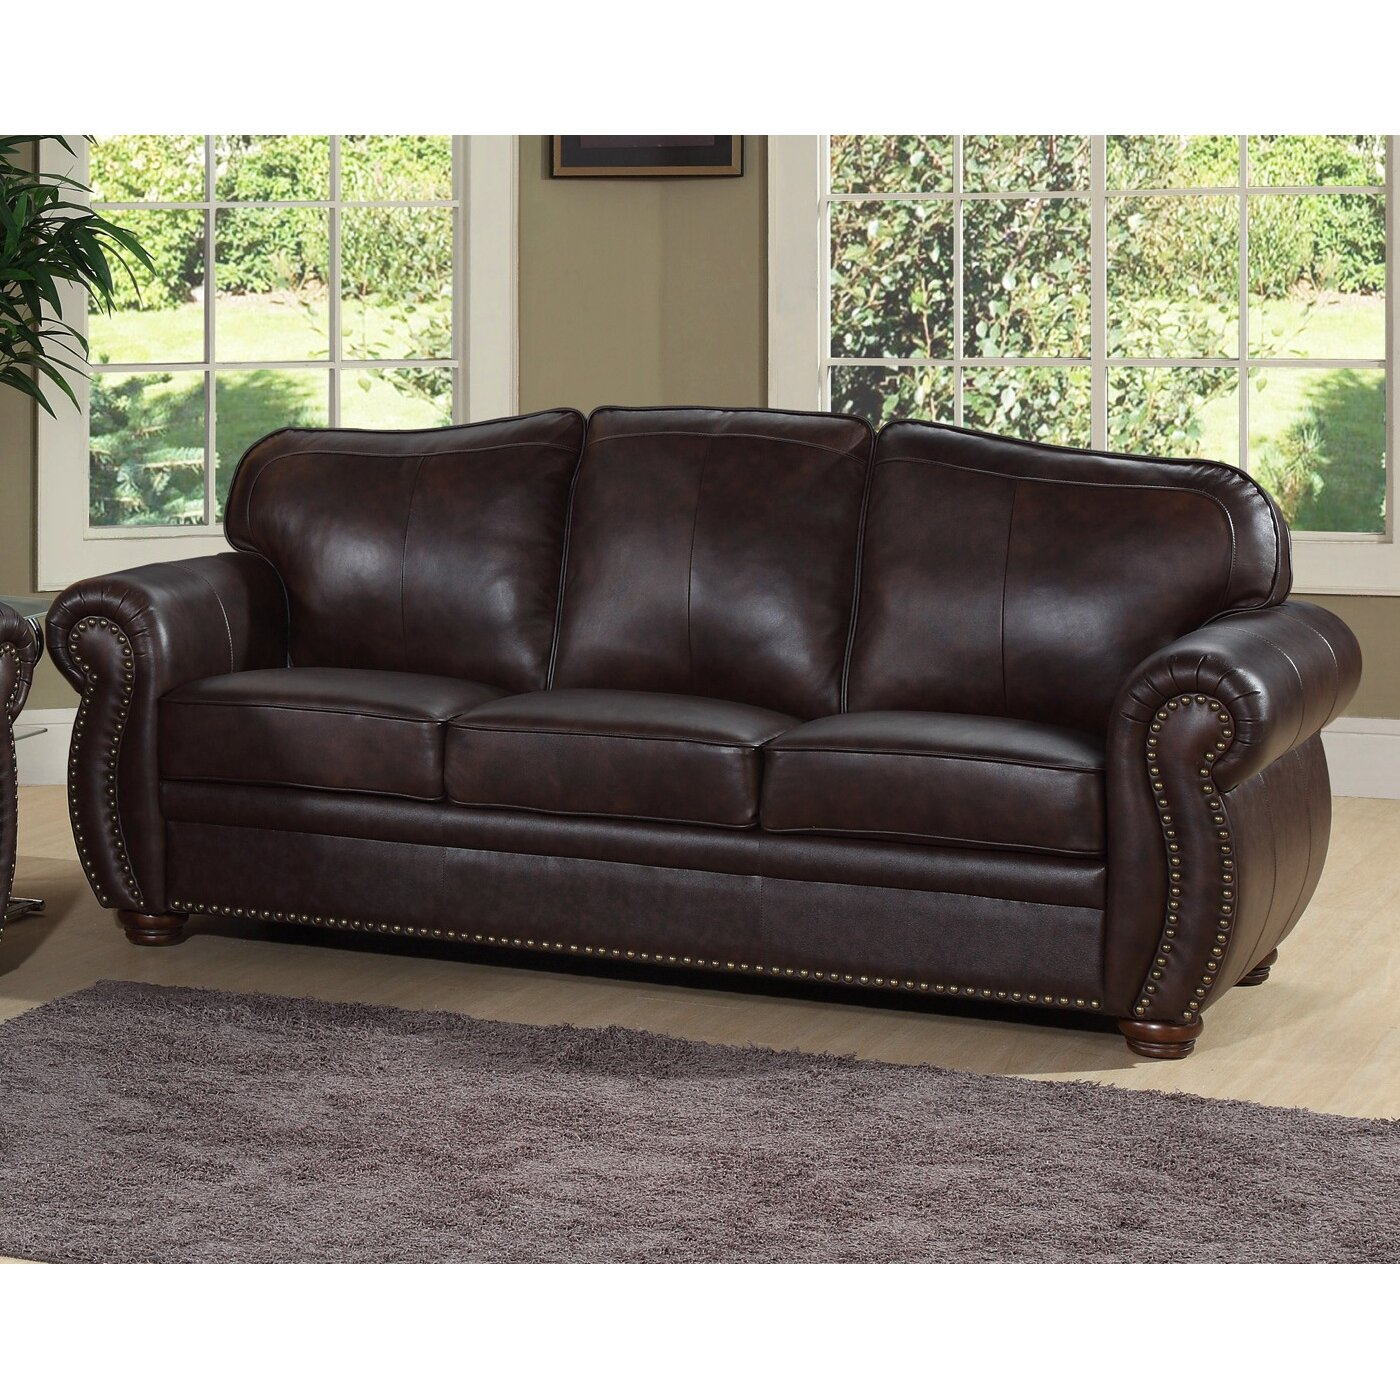 Leather Living Room Astoria Grand Nassau Leather Living Room Collection Reviews